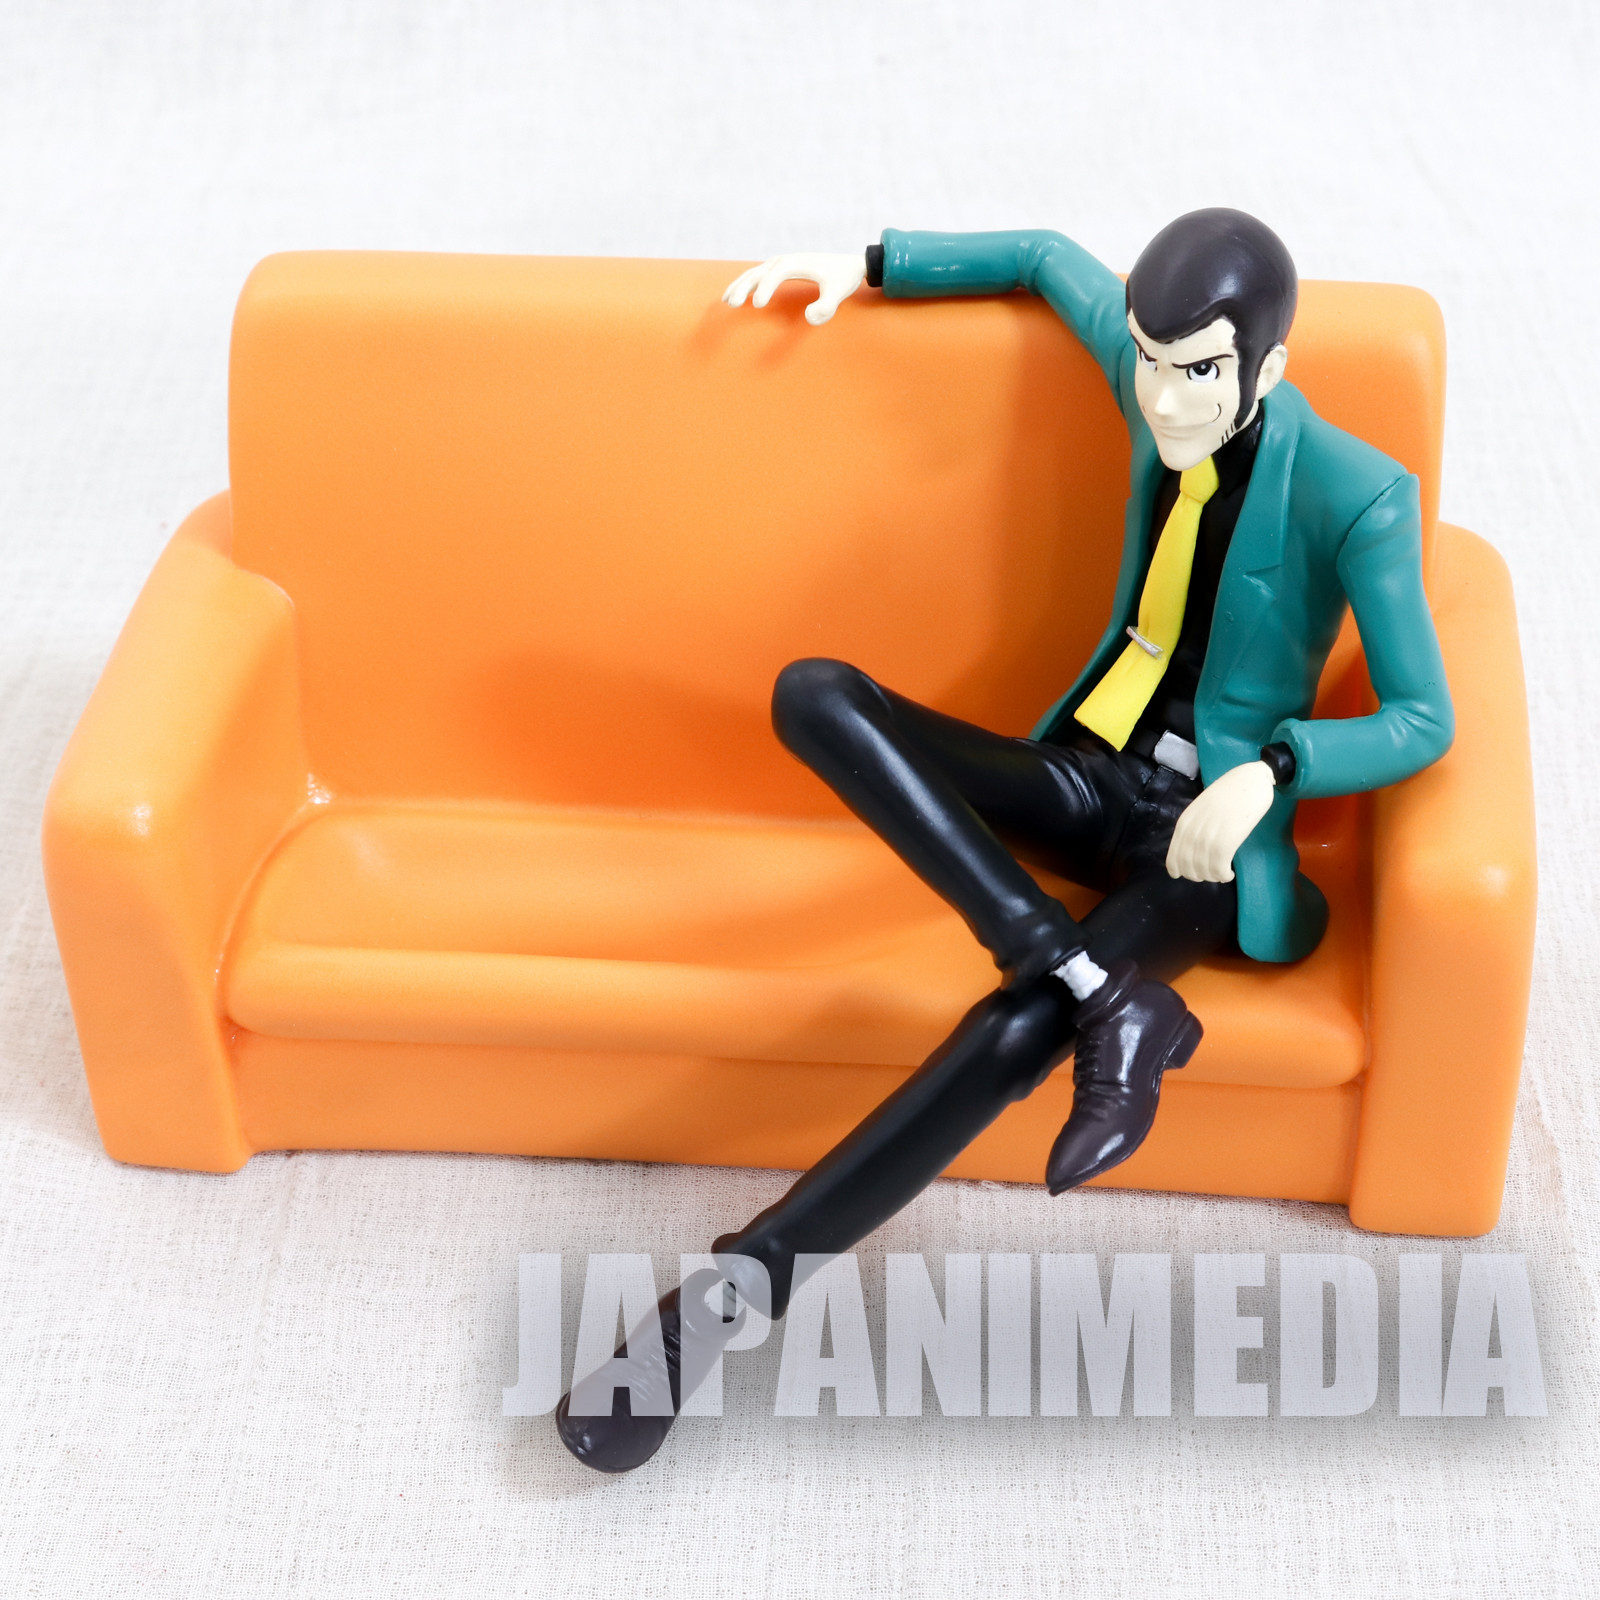 Lupin the Third (3rd) Lupin on Sofa Figure Cell Phone Stand Banpresto